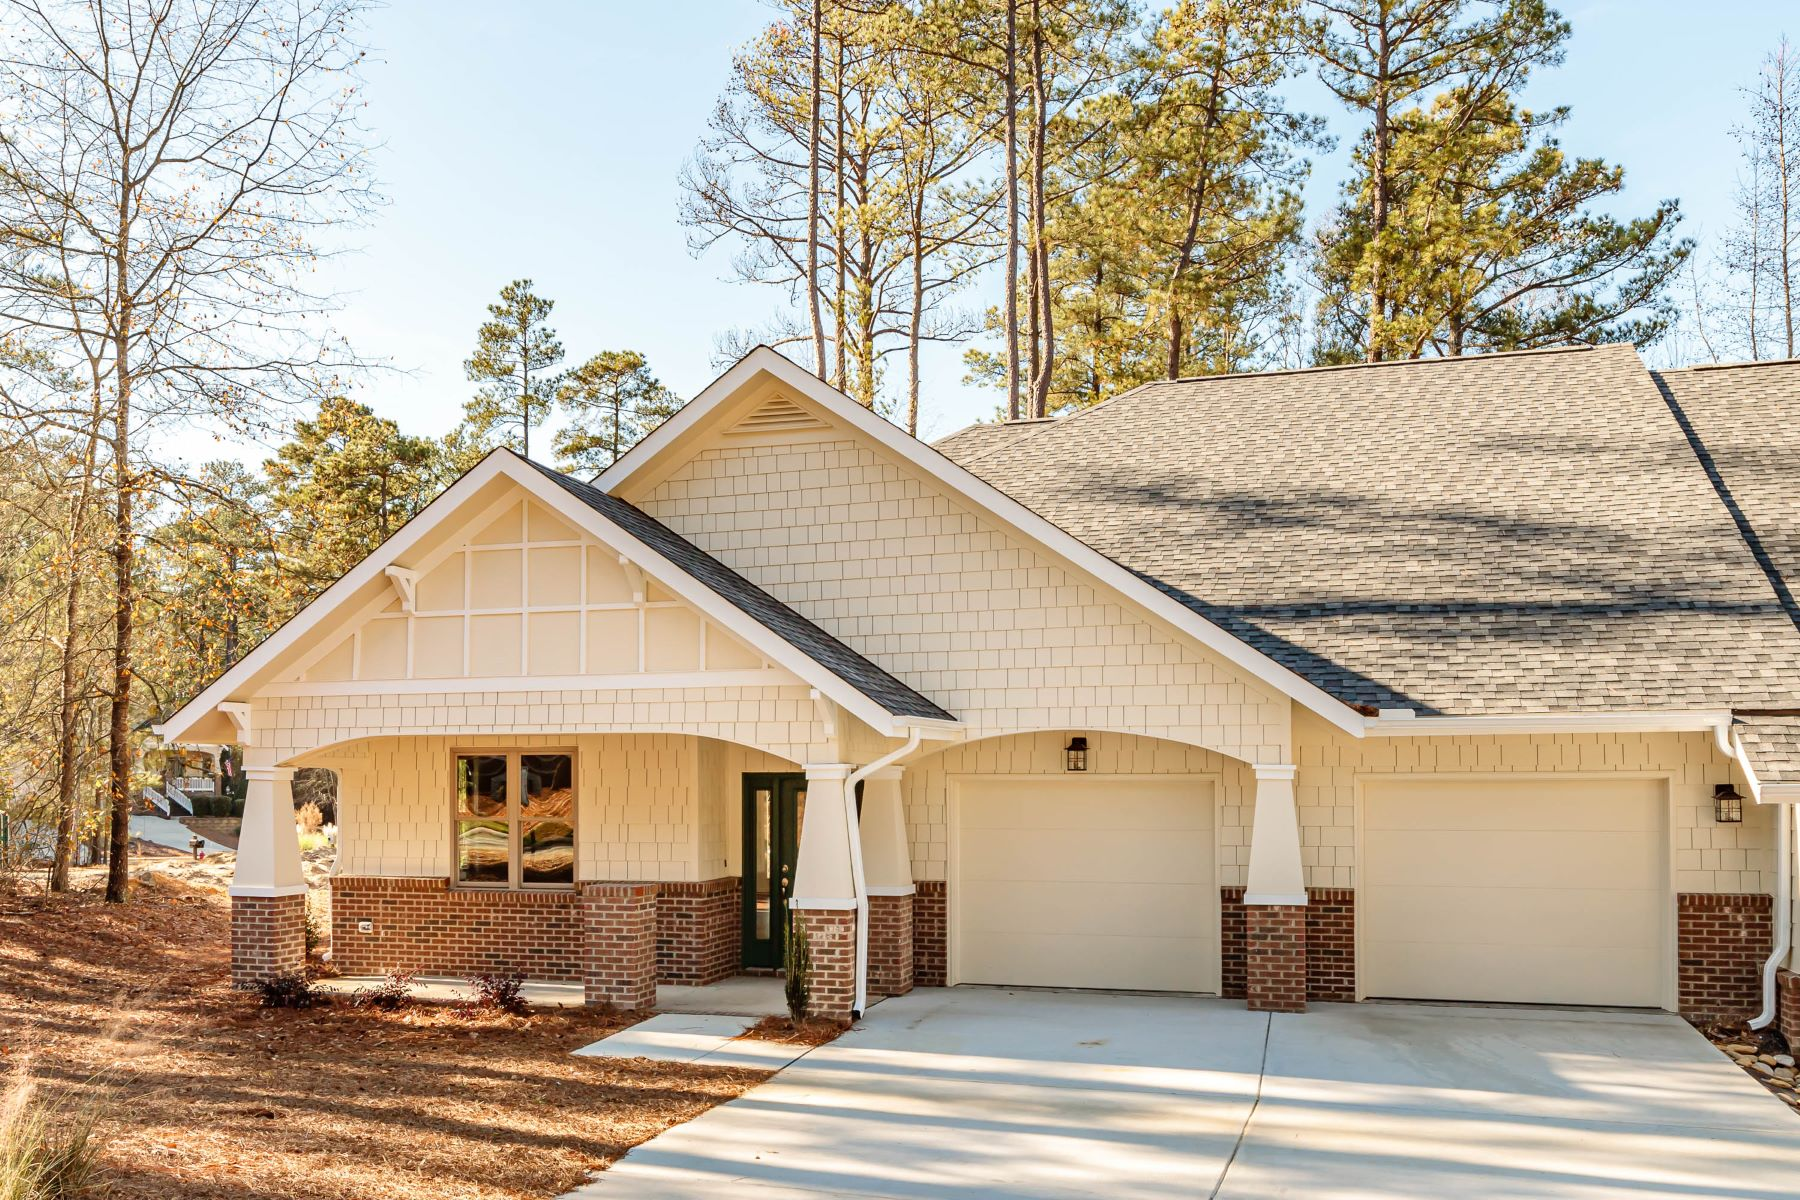 townhouses for Sale at 41 Lamplighter Village Dr. Pinehurst, North Carolina 28374 United States